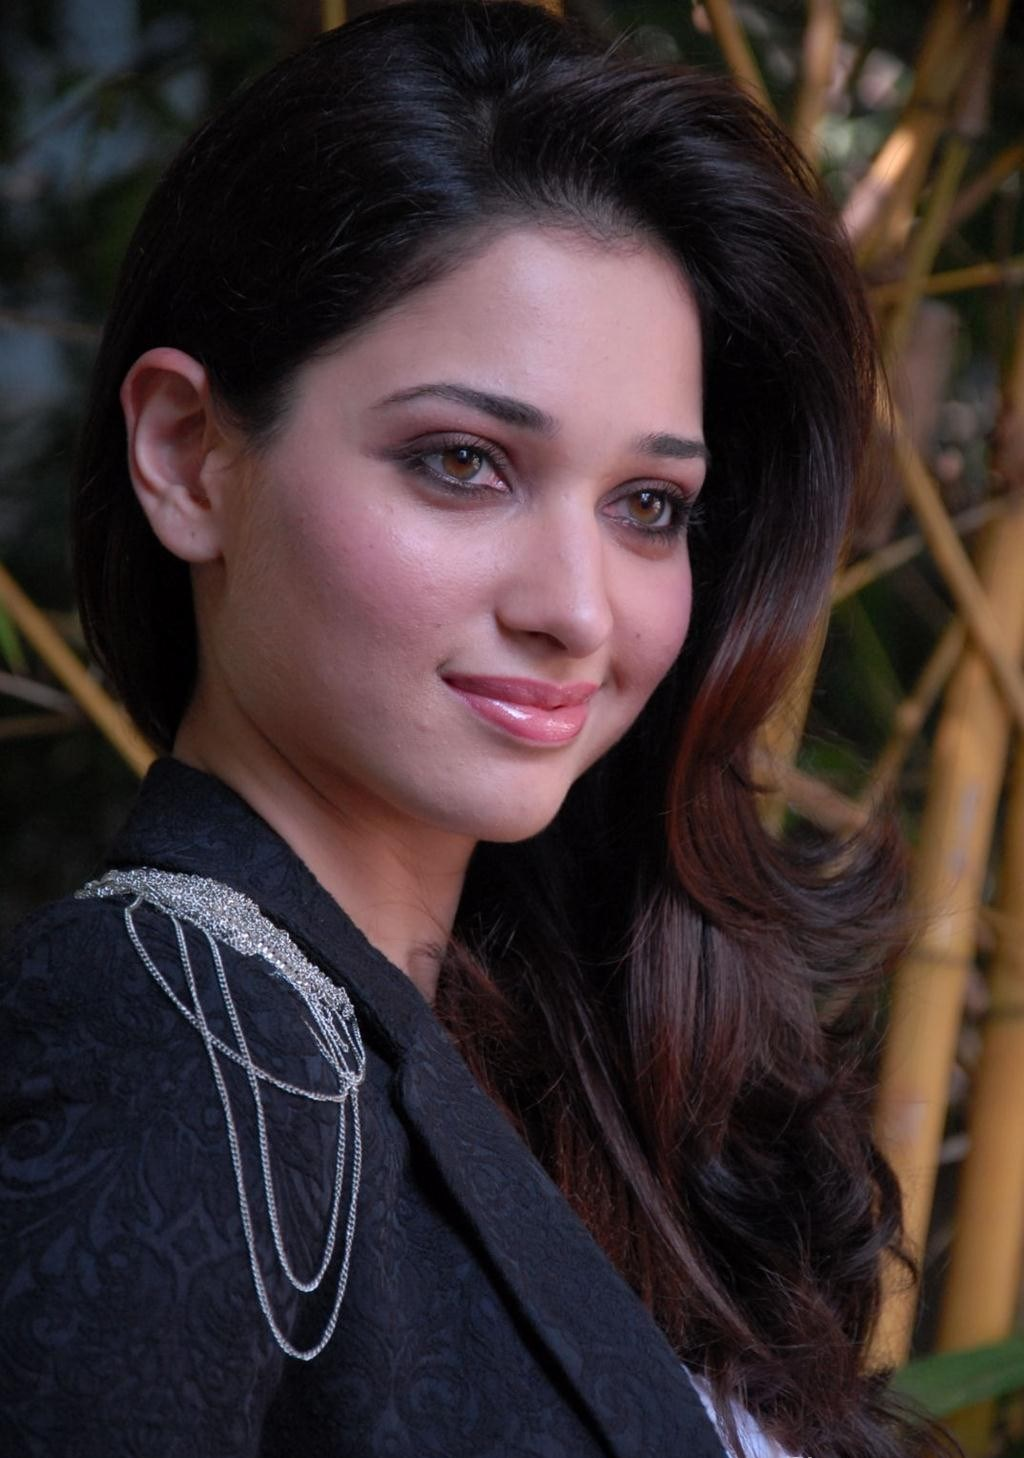 tamanna latest stills | actress images - heroines photos - www